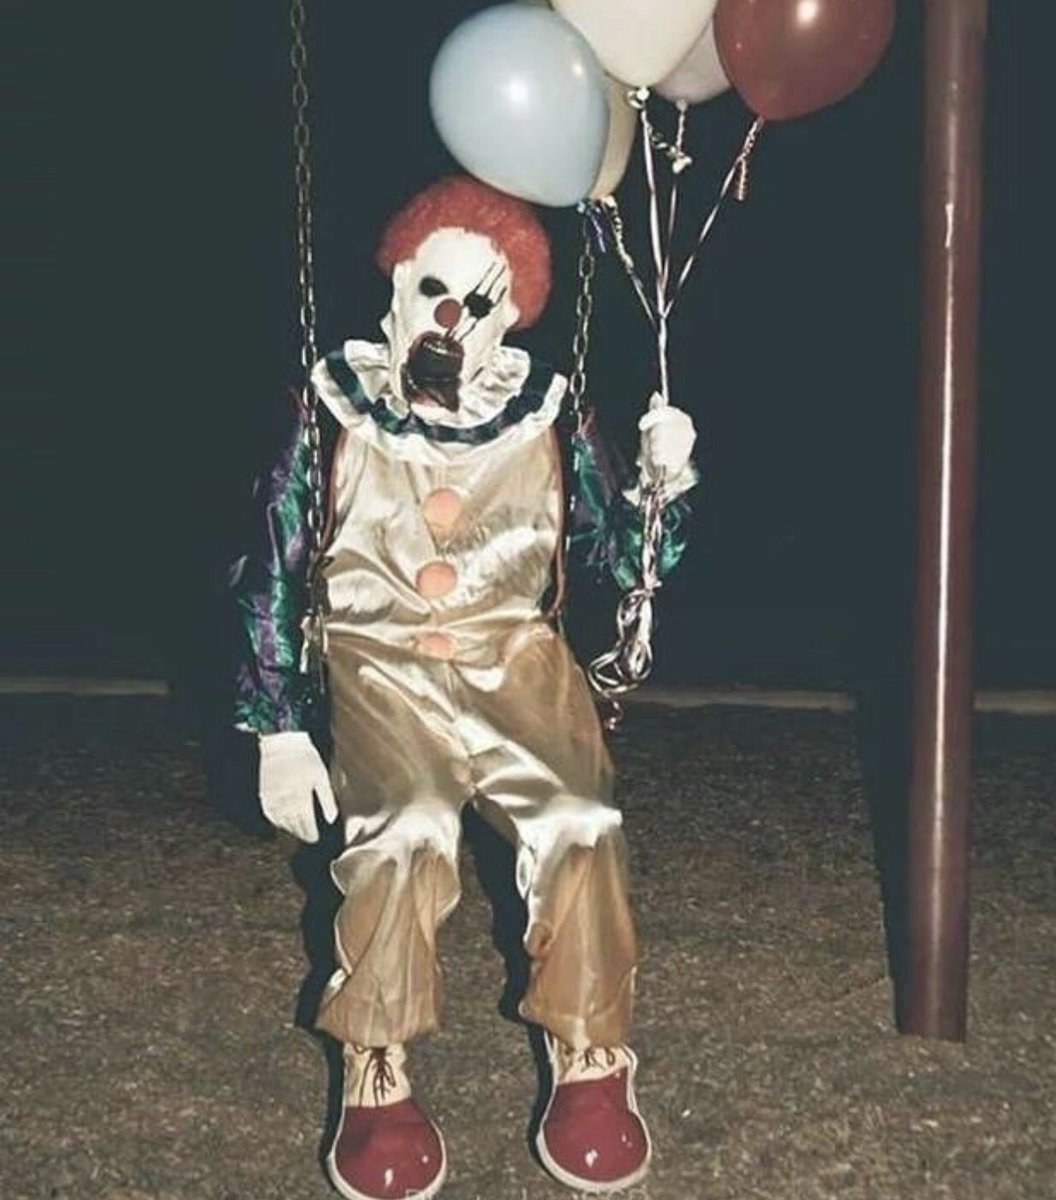 Creepy clowns make threats in New Haven. Latest on @WTNH at 10/11 https://t.co/yTkZgmmmDh